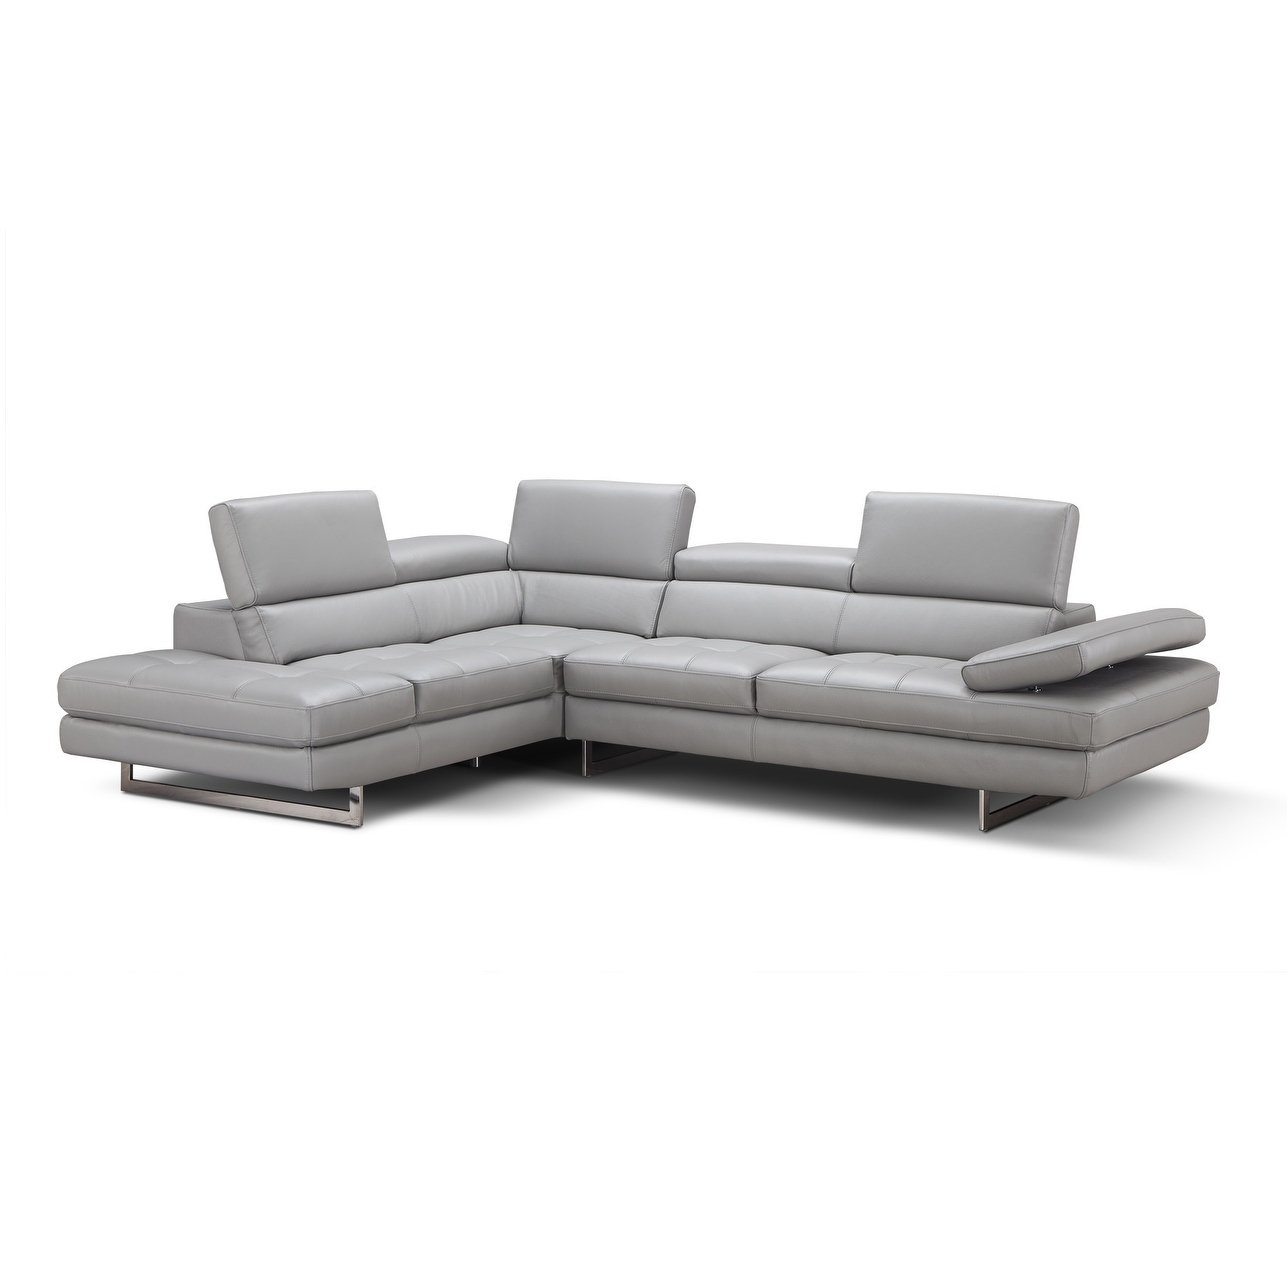 Shop Aurora Italian Leather Sectional Light Grey In Left Hand Facing Inside Aurora 2 Piece Sectionals (View 11 of 25)